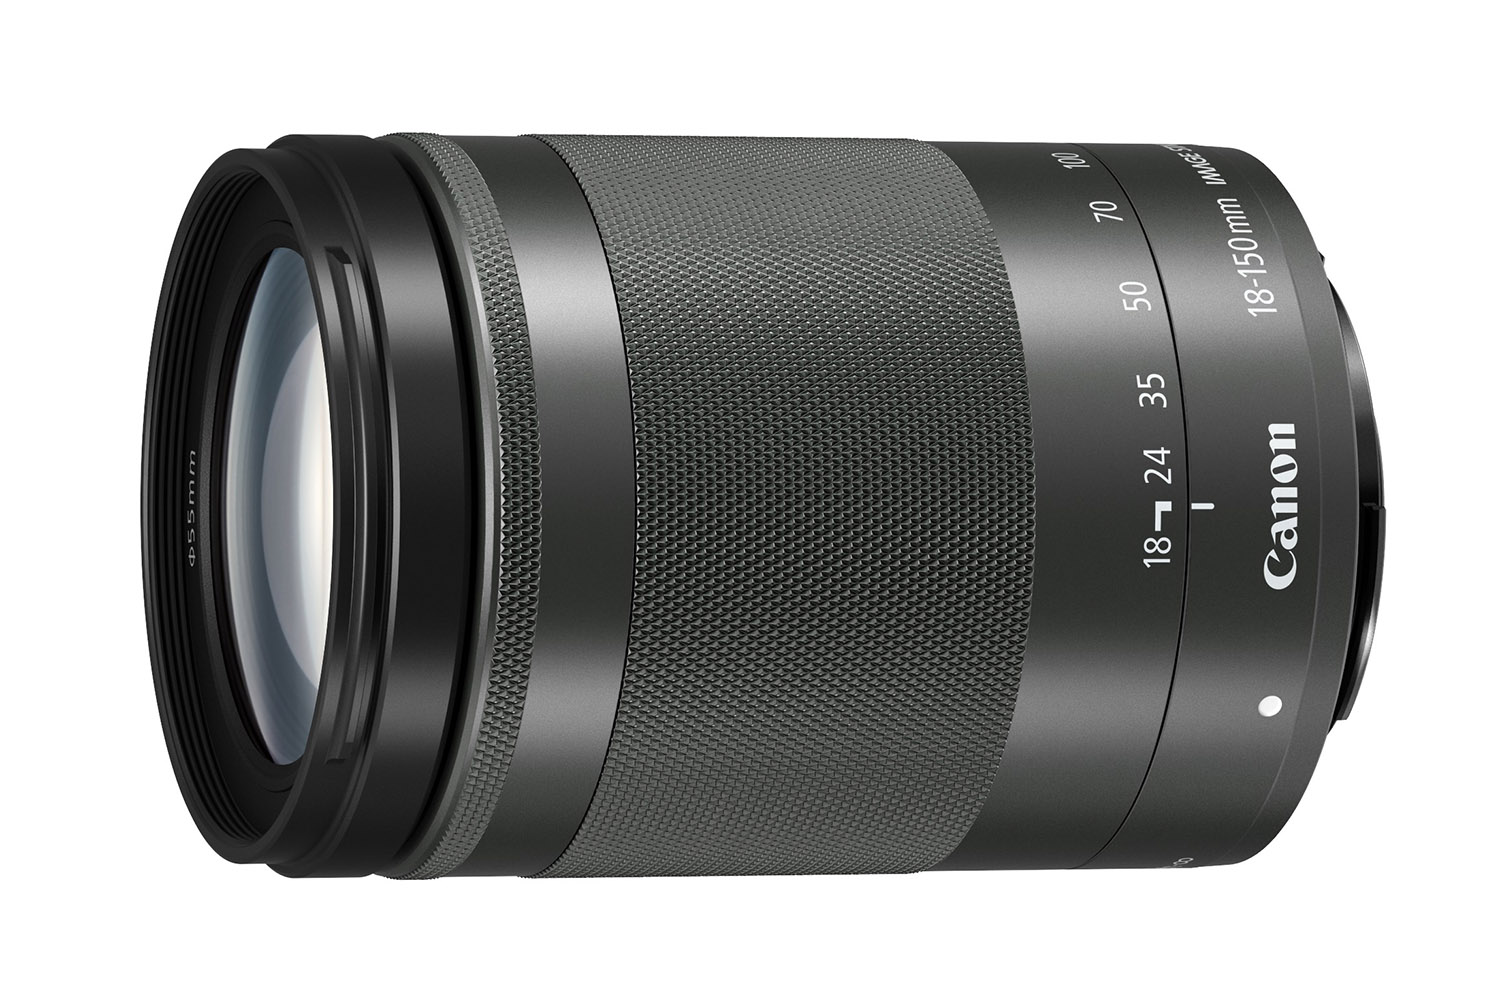 The Canon EF-M 18-150mm f/3.5-6.3 IS STM lens for mirrorless cameras